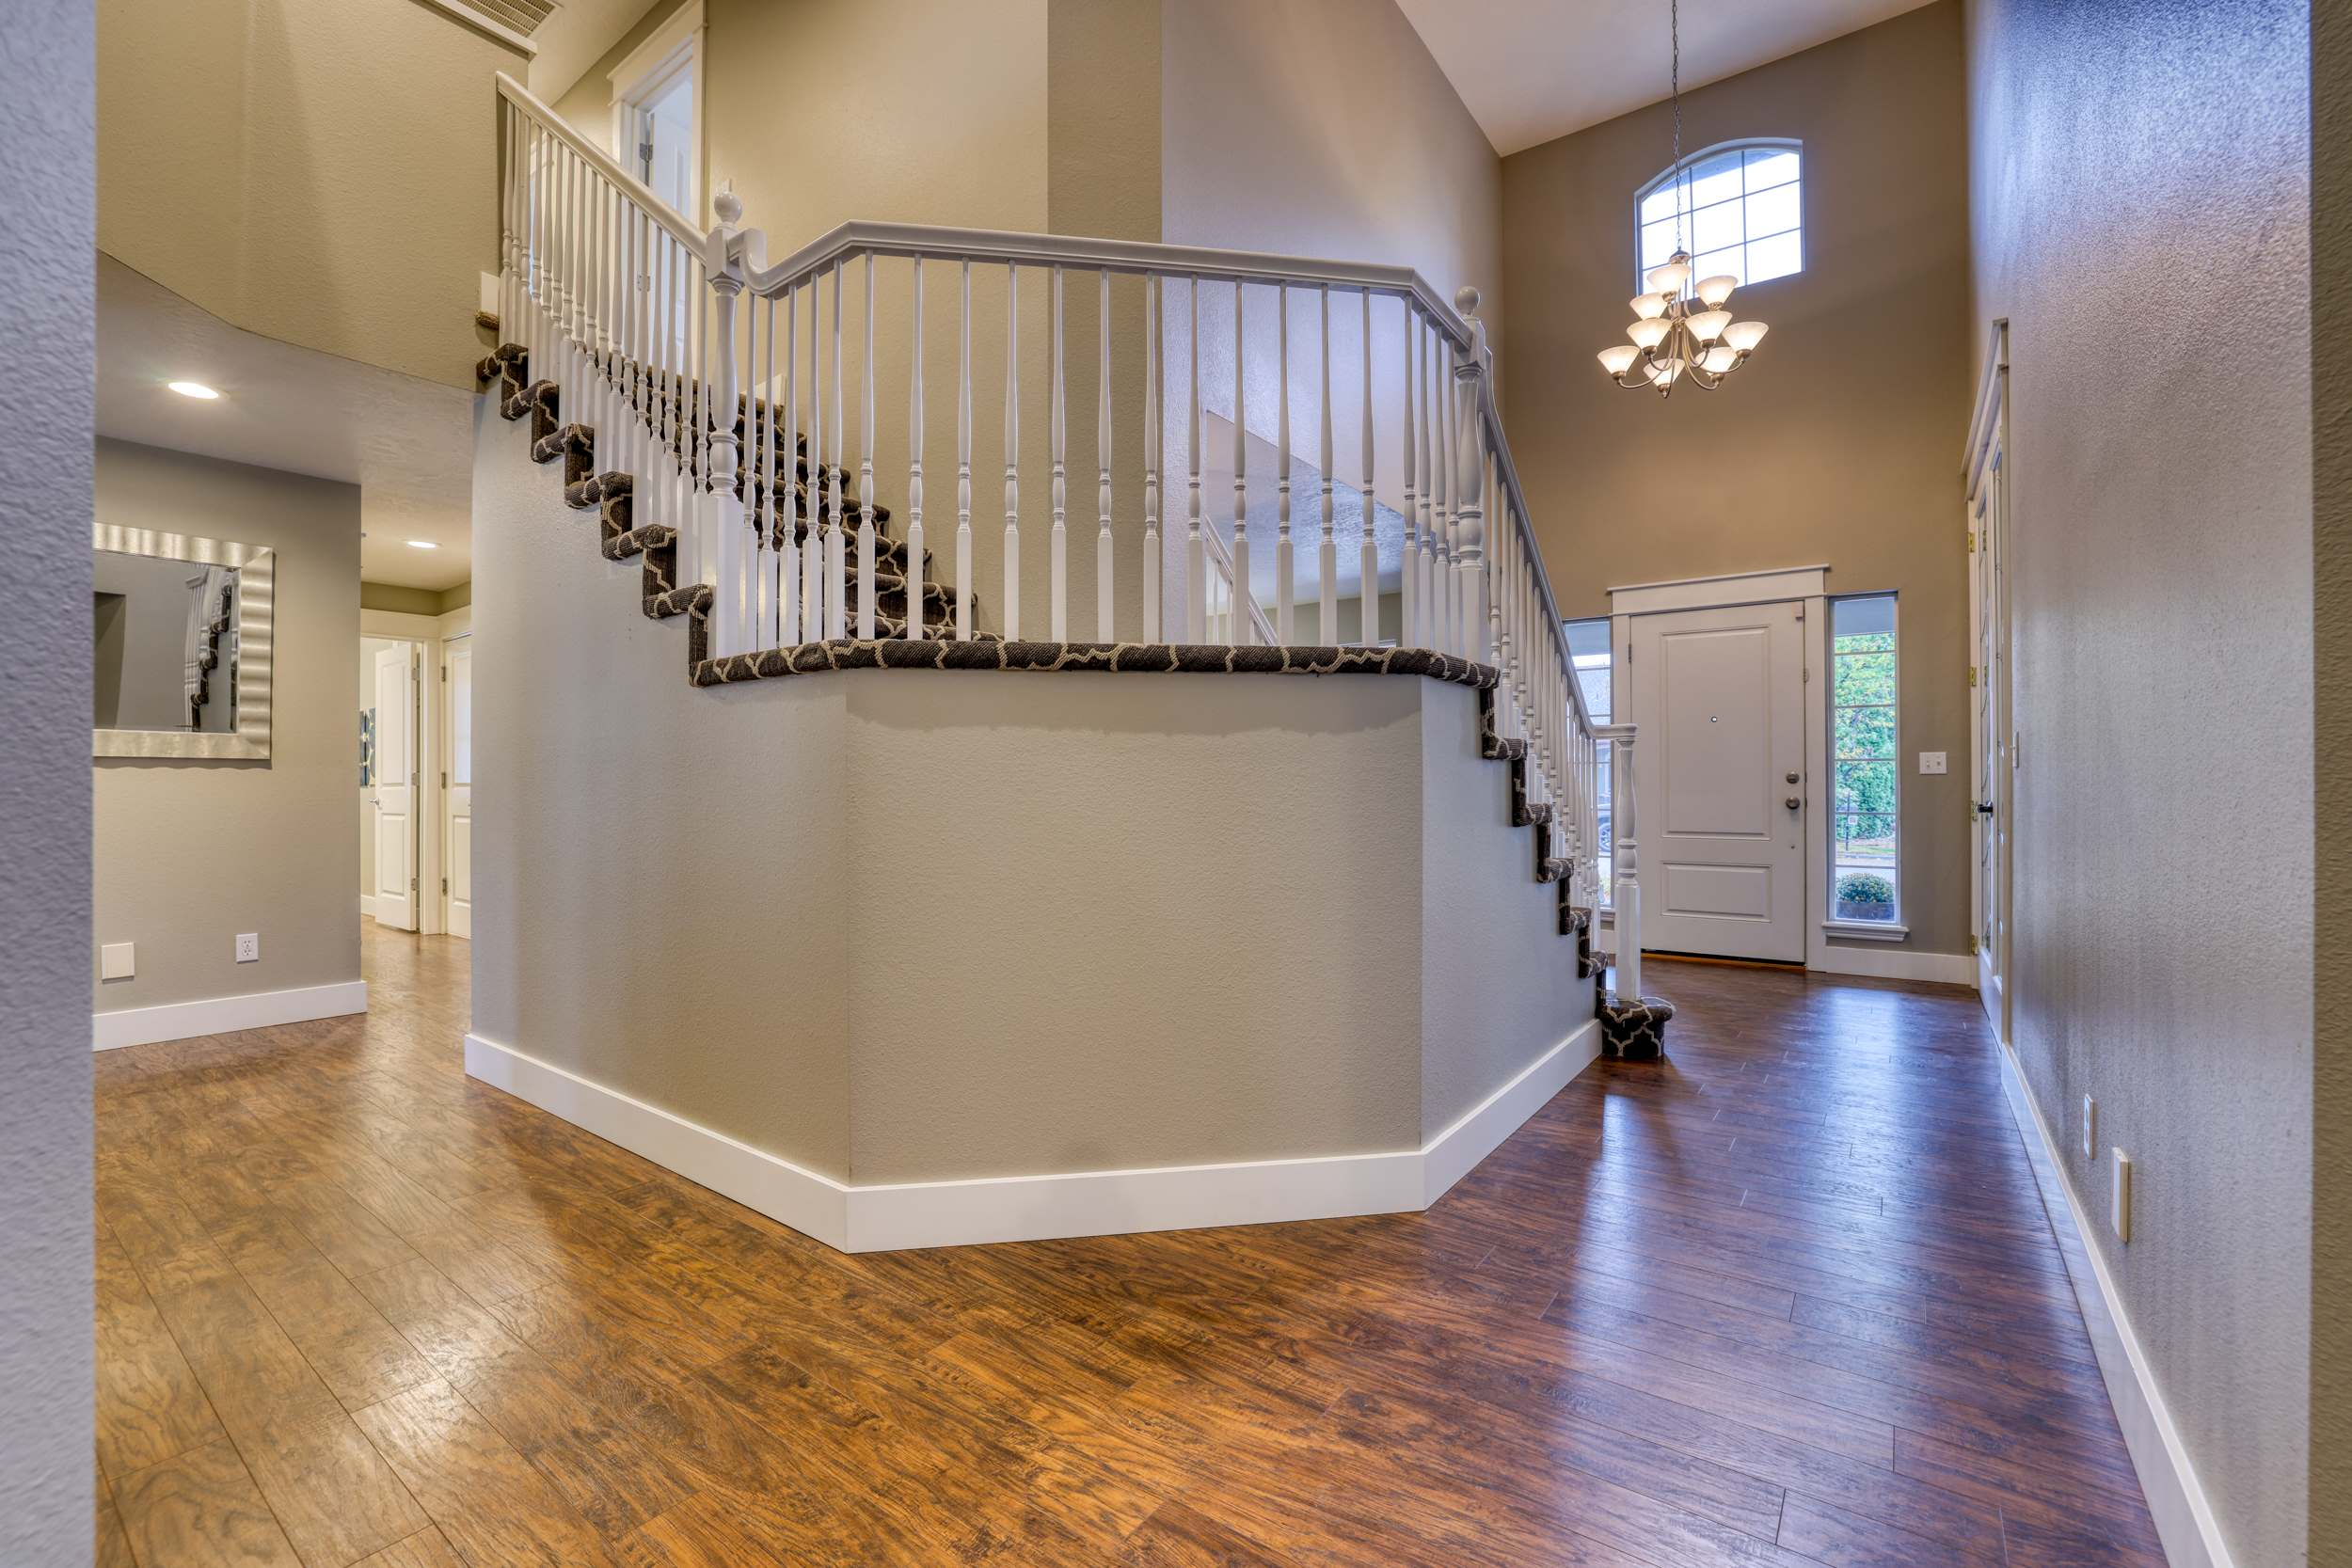 3822 S Arno Ave, Meridian, ID 83642